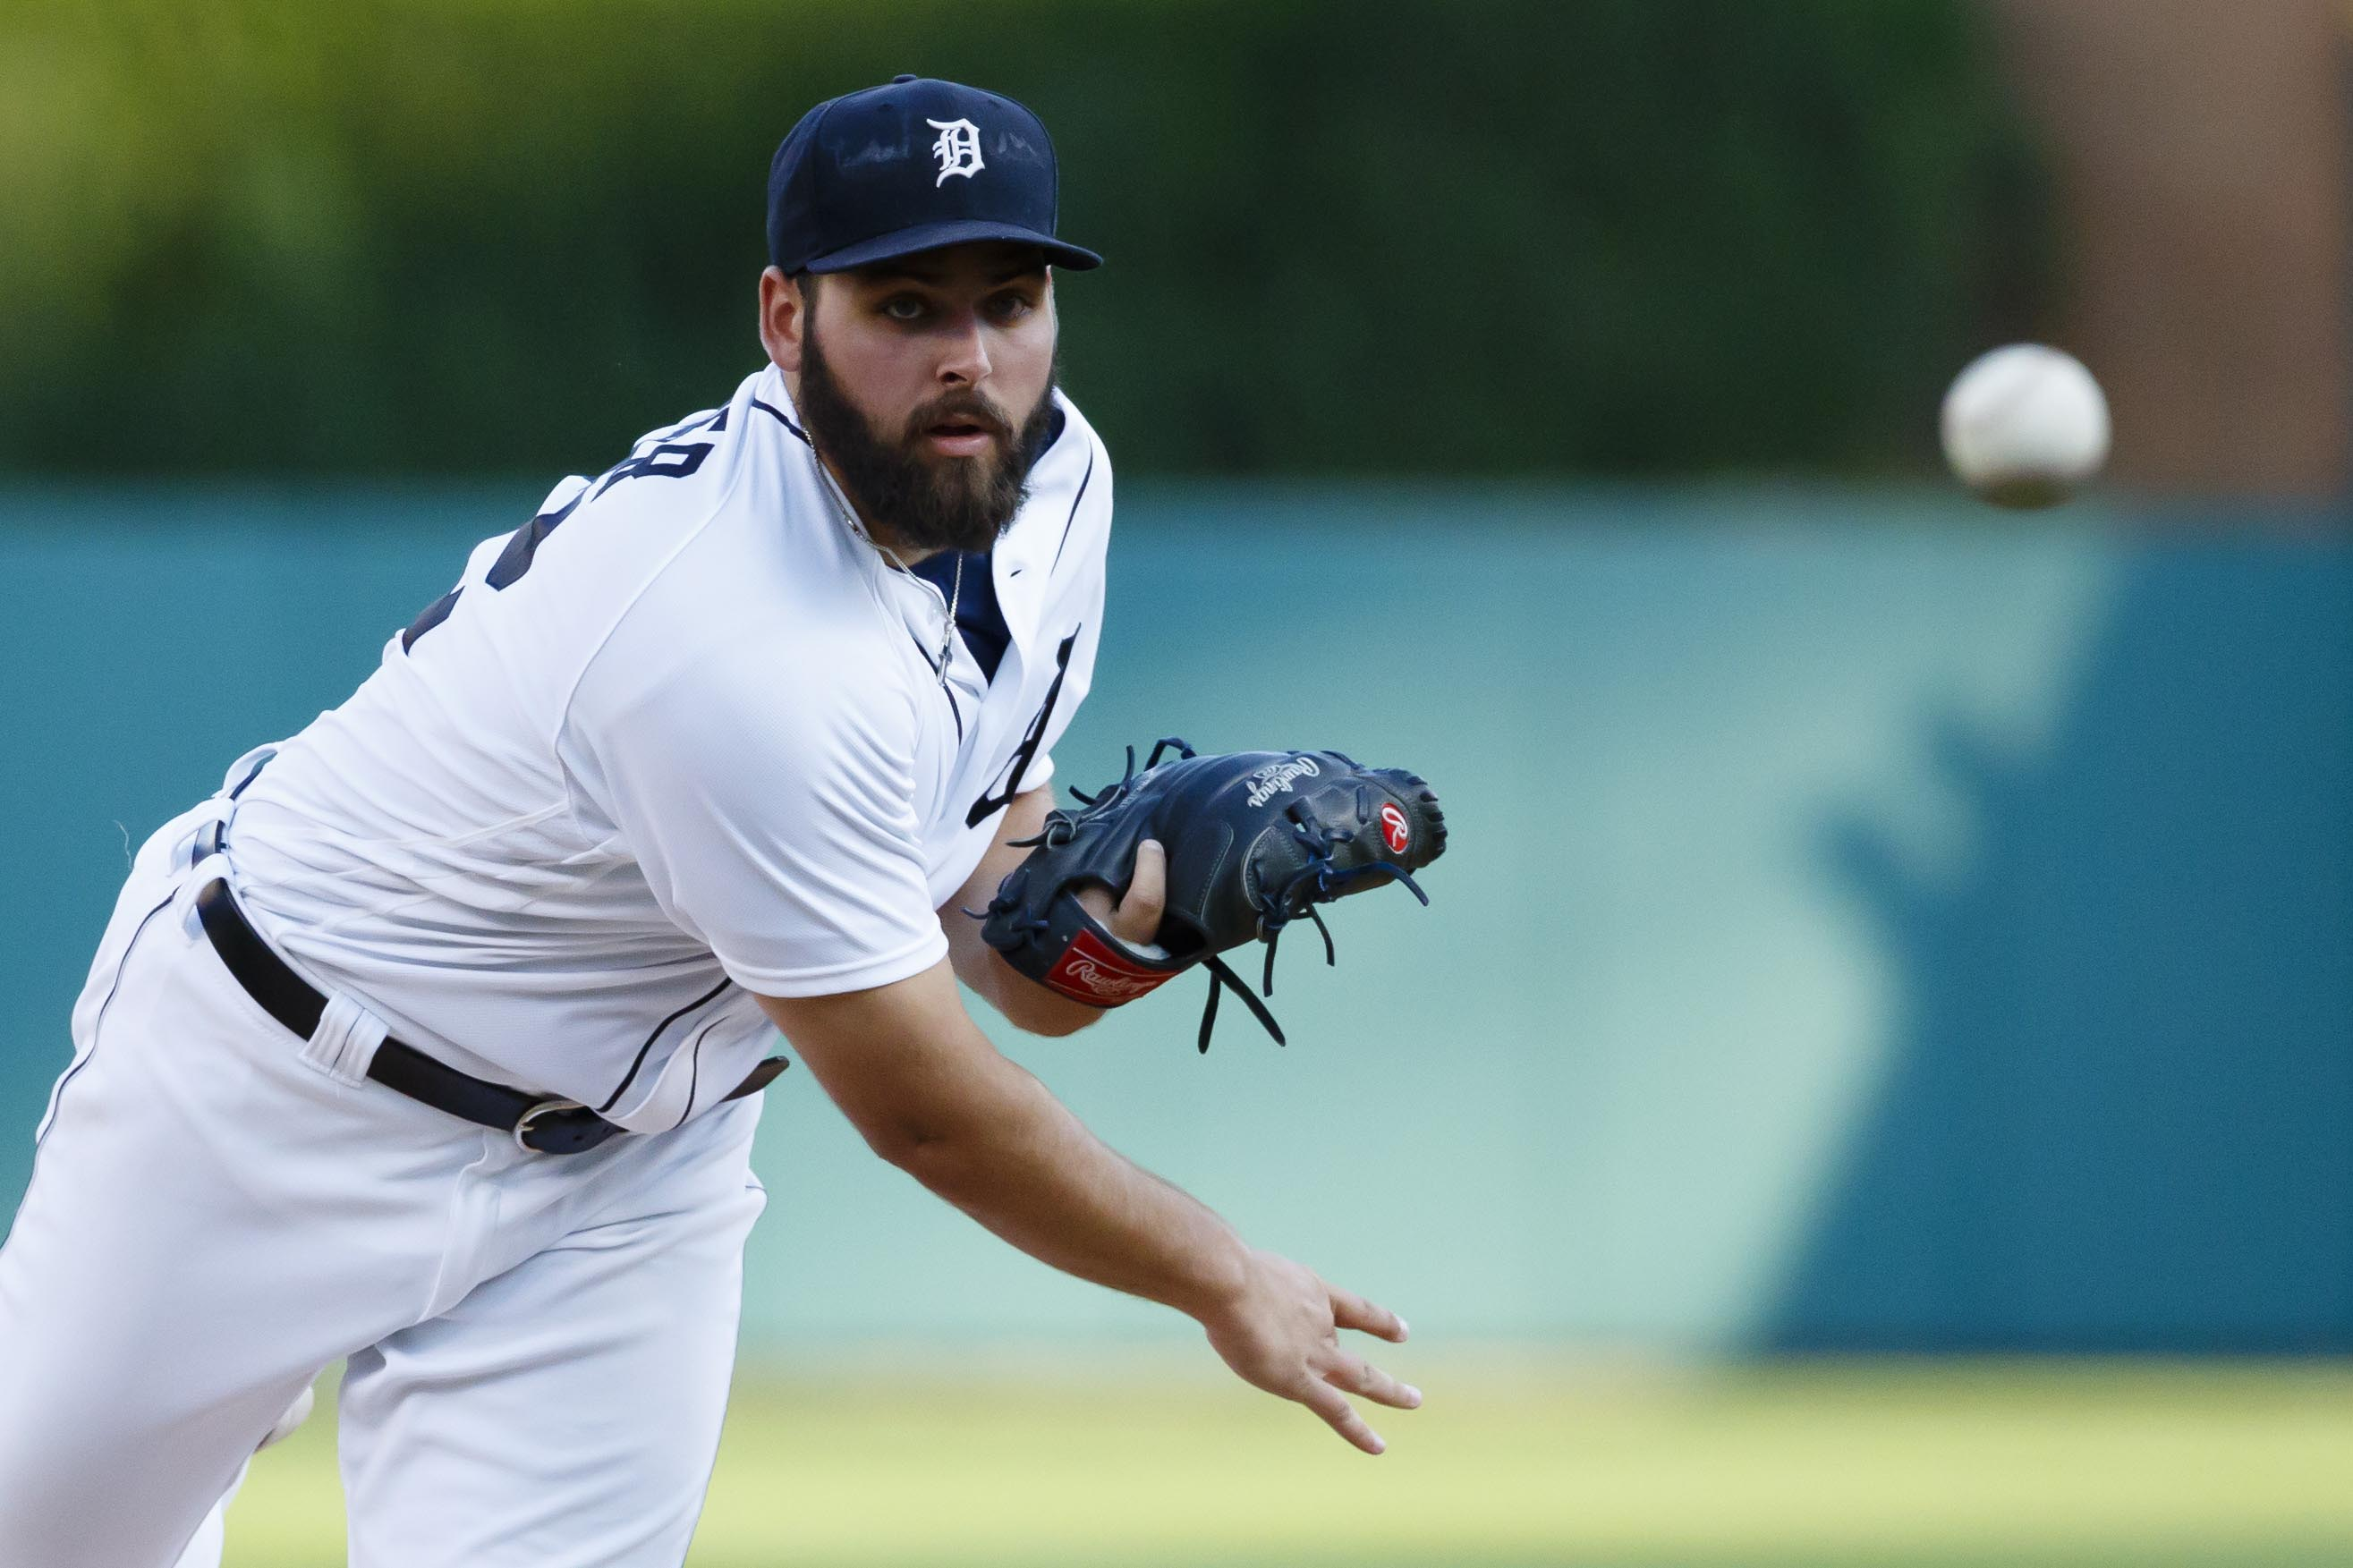 Aug 3, 2016; Detroit, MI, USA; Detroit Tigers starting pitcher Michael Fulmer (32) warms up before the second inning against the Chicago White Sox at Comerica Park. Mandatory Credit: Rick Osentoski-USA TODAY Sports